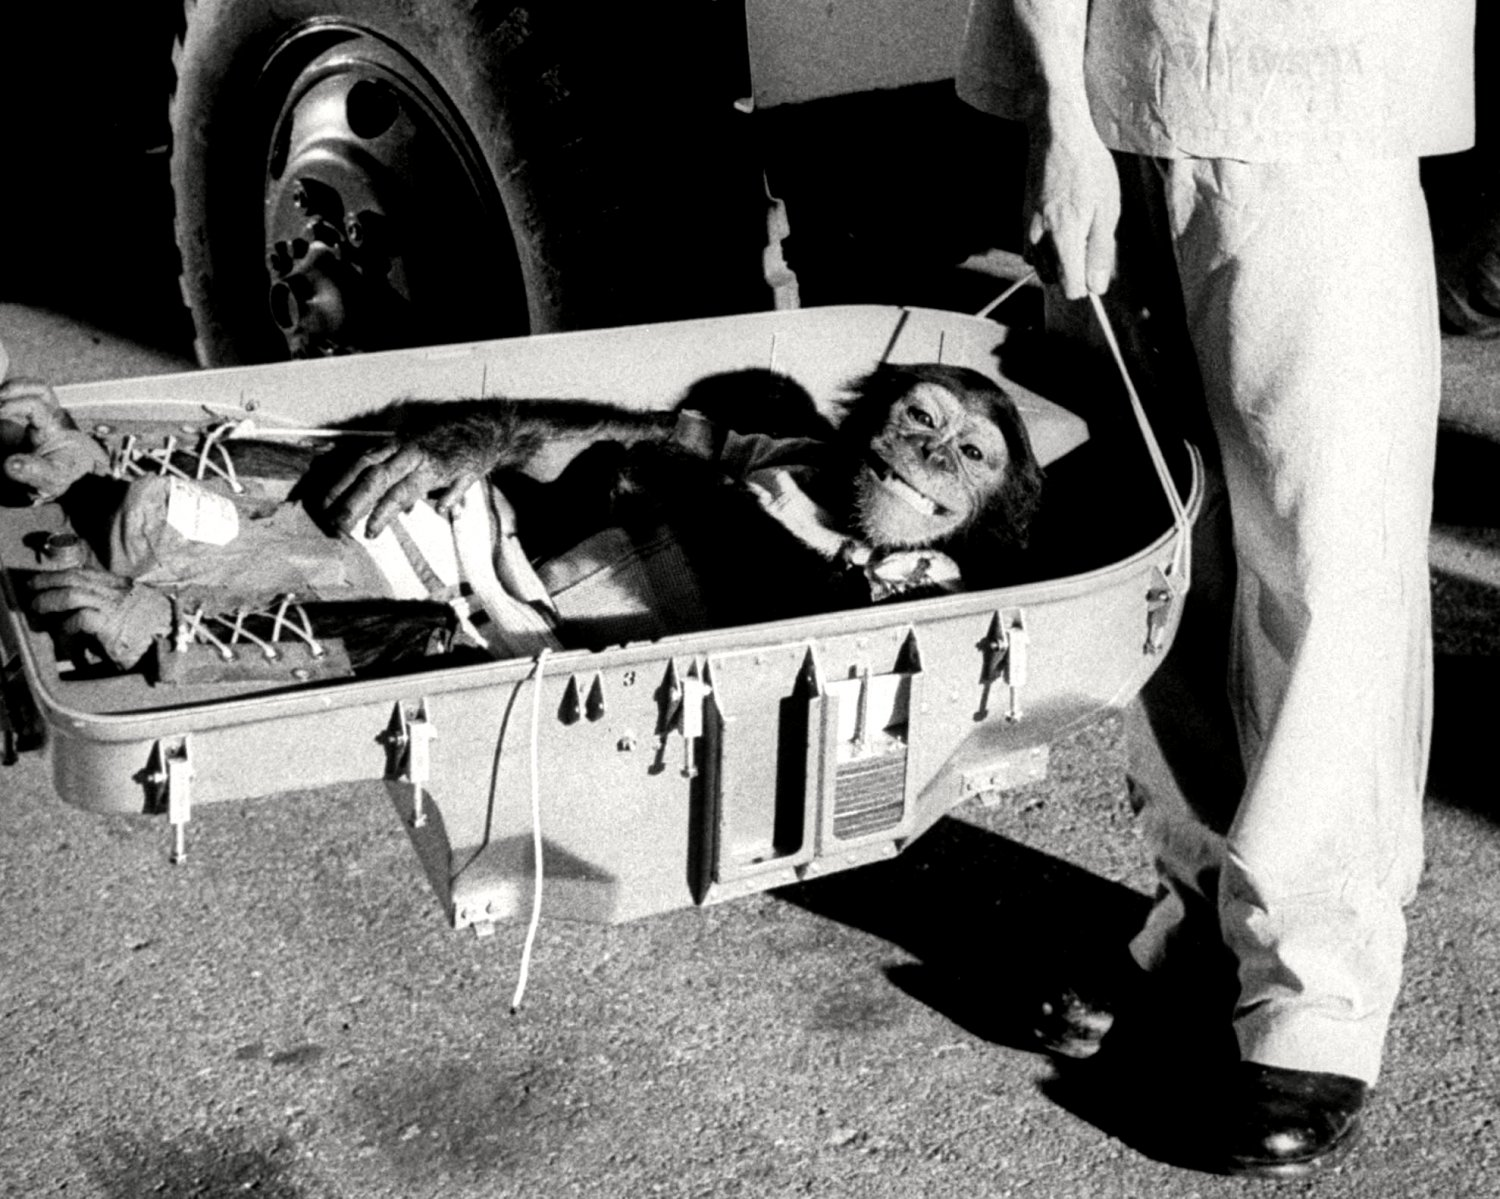 HAM THE ASTROCHIMP SMILES AFTER SUCCESSFUL TEST FLIGHT 8X10 NASA PHOTO (OP-009)